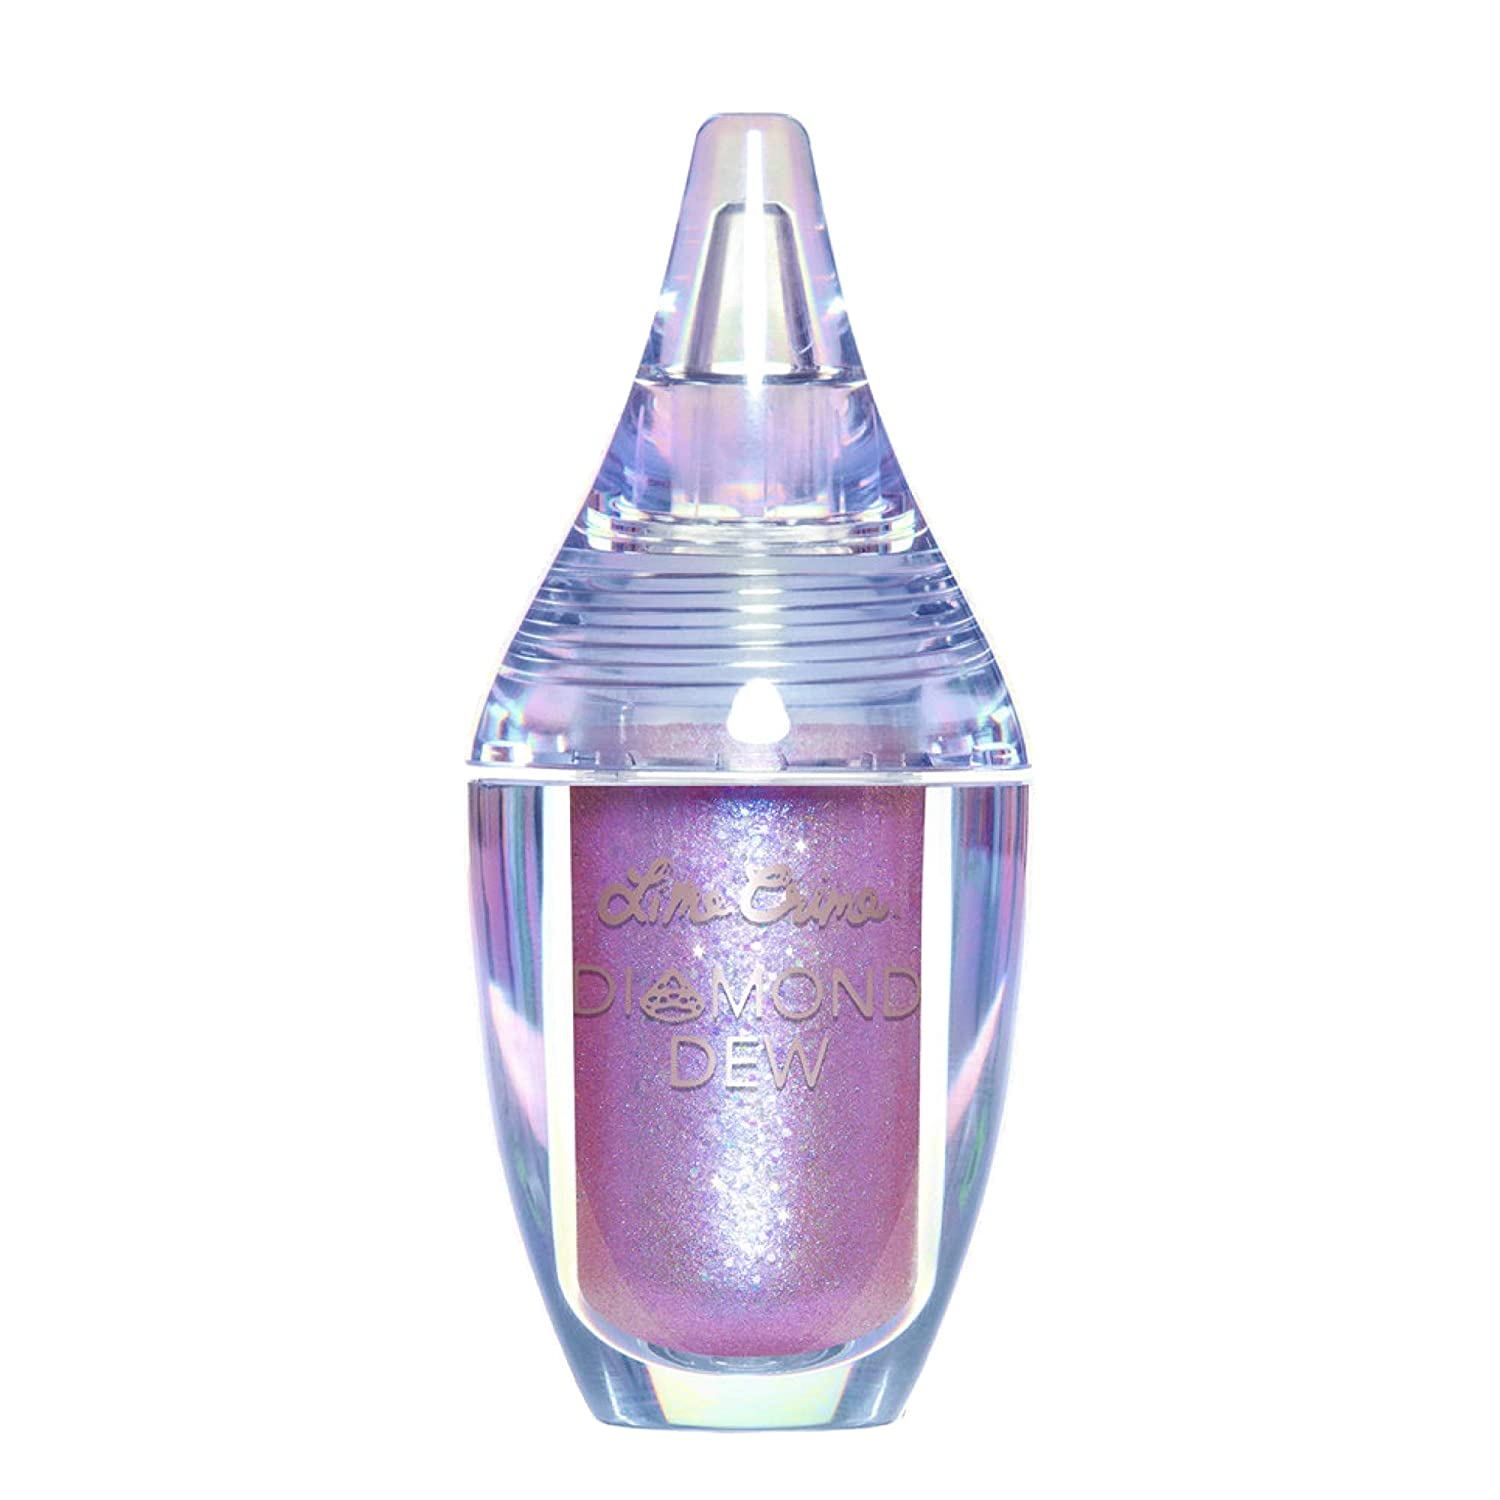 Lime Crime Diamond Dew Glitter Eyeshadow, Aurora - Iridescent Grey-Violet-Blue Aqua Lid Topper - Reflective Sparkle Shadow for Lids, Cheeks & Body - Won't Smudge or Crease - Vegan - 0.14 fl oz